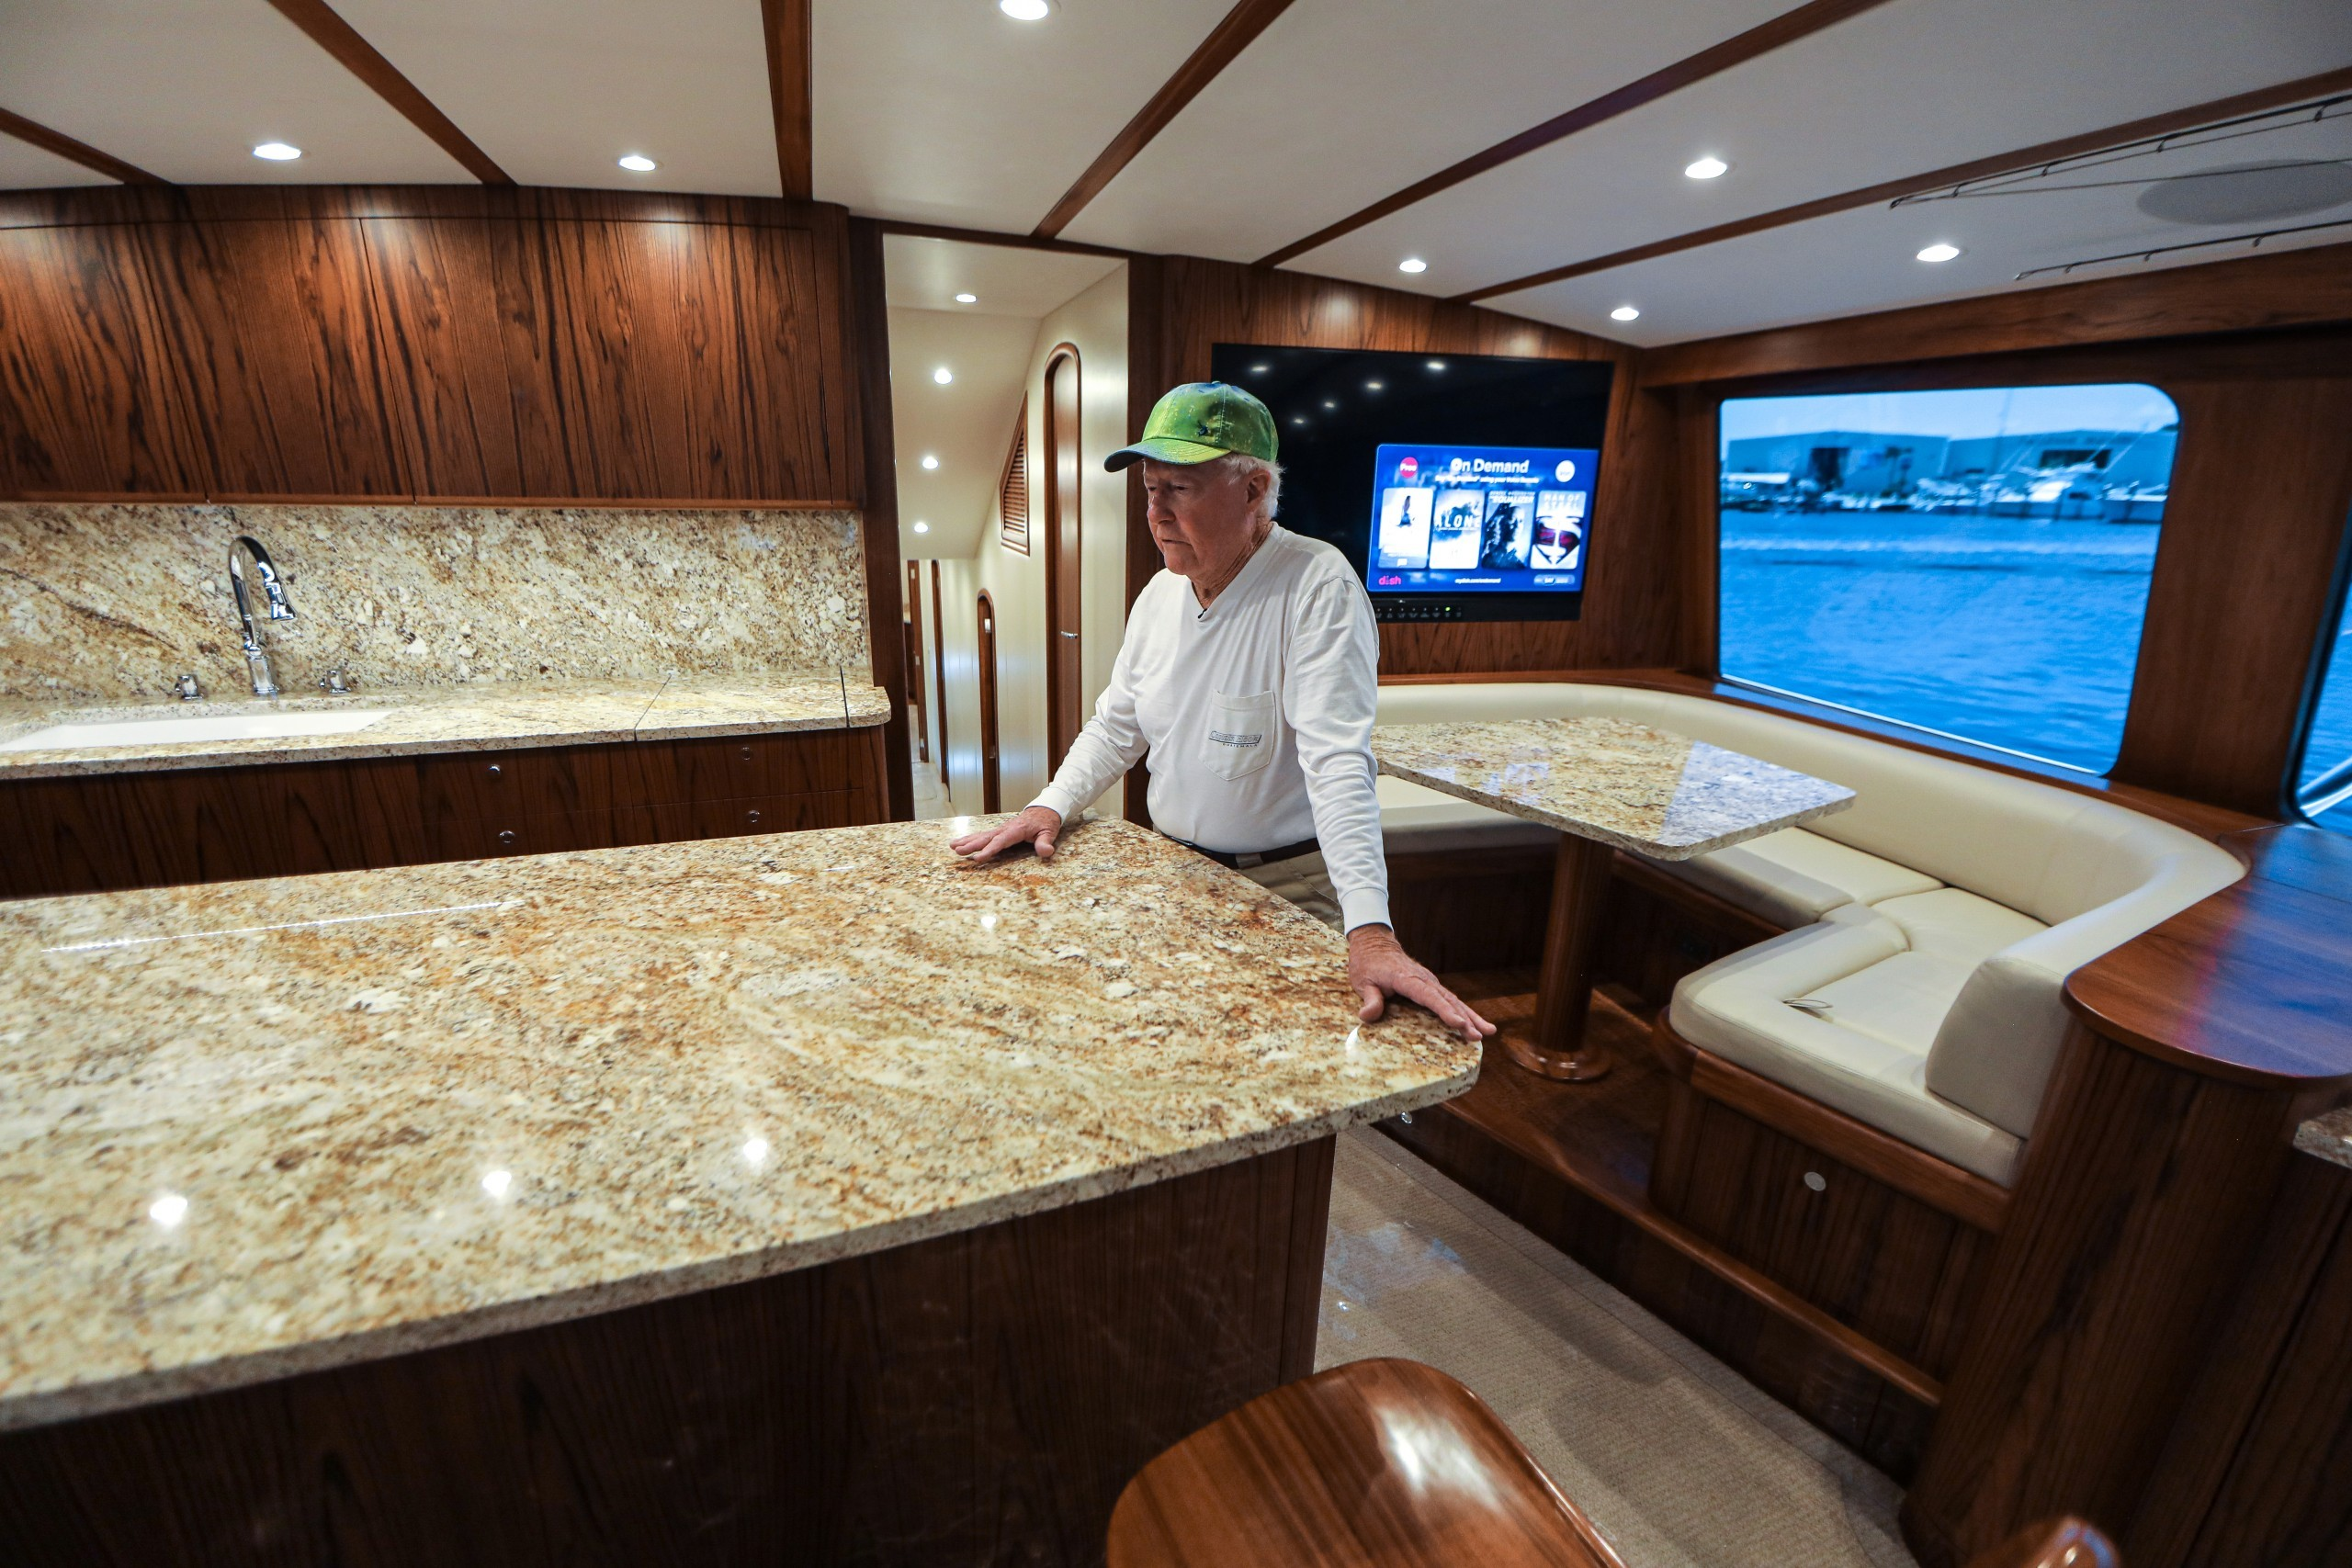 New 72' Bayliss Old Reliable—The Galley